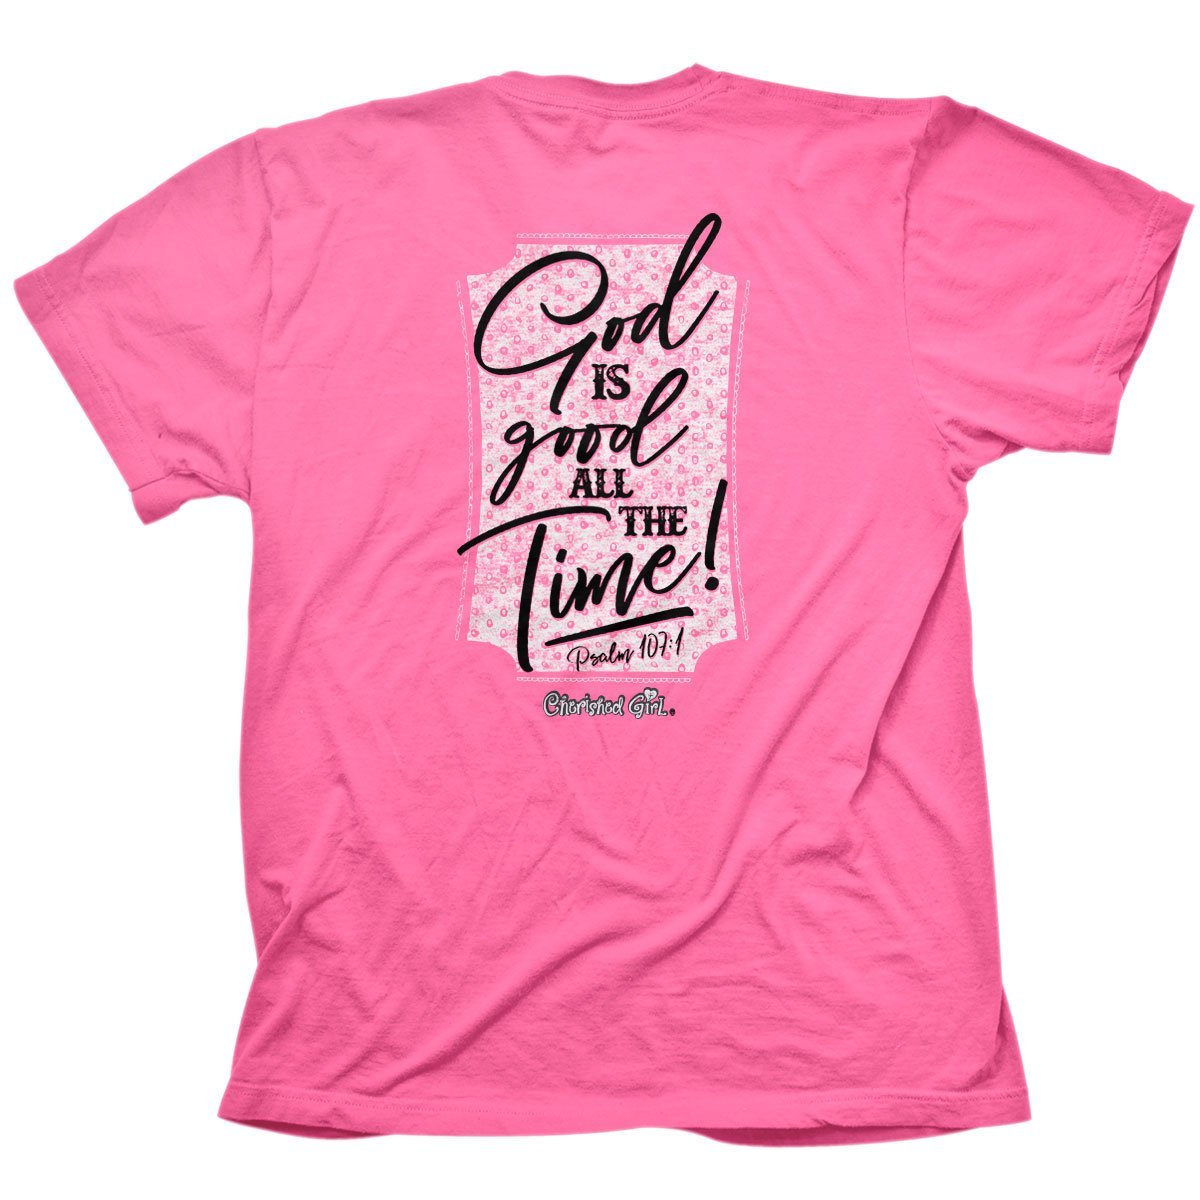 Cherished Girl® Adult T-Shirt - All The Time